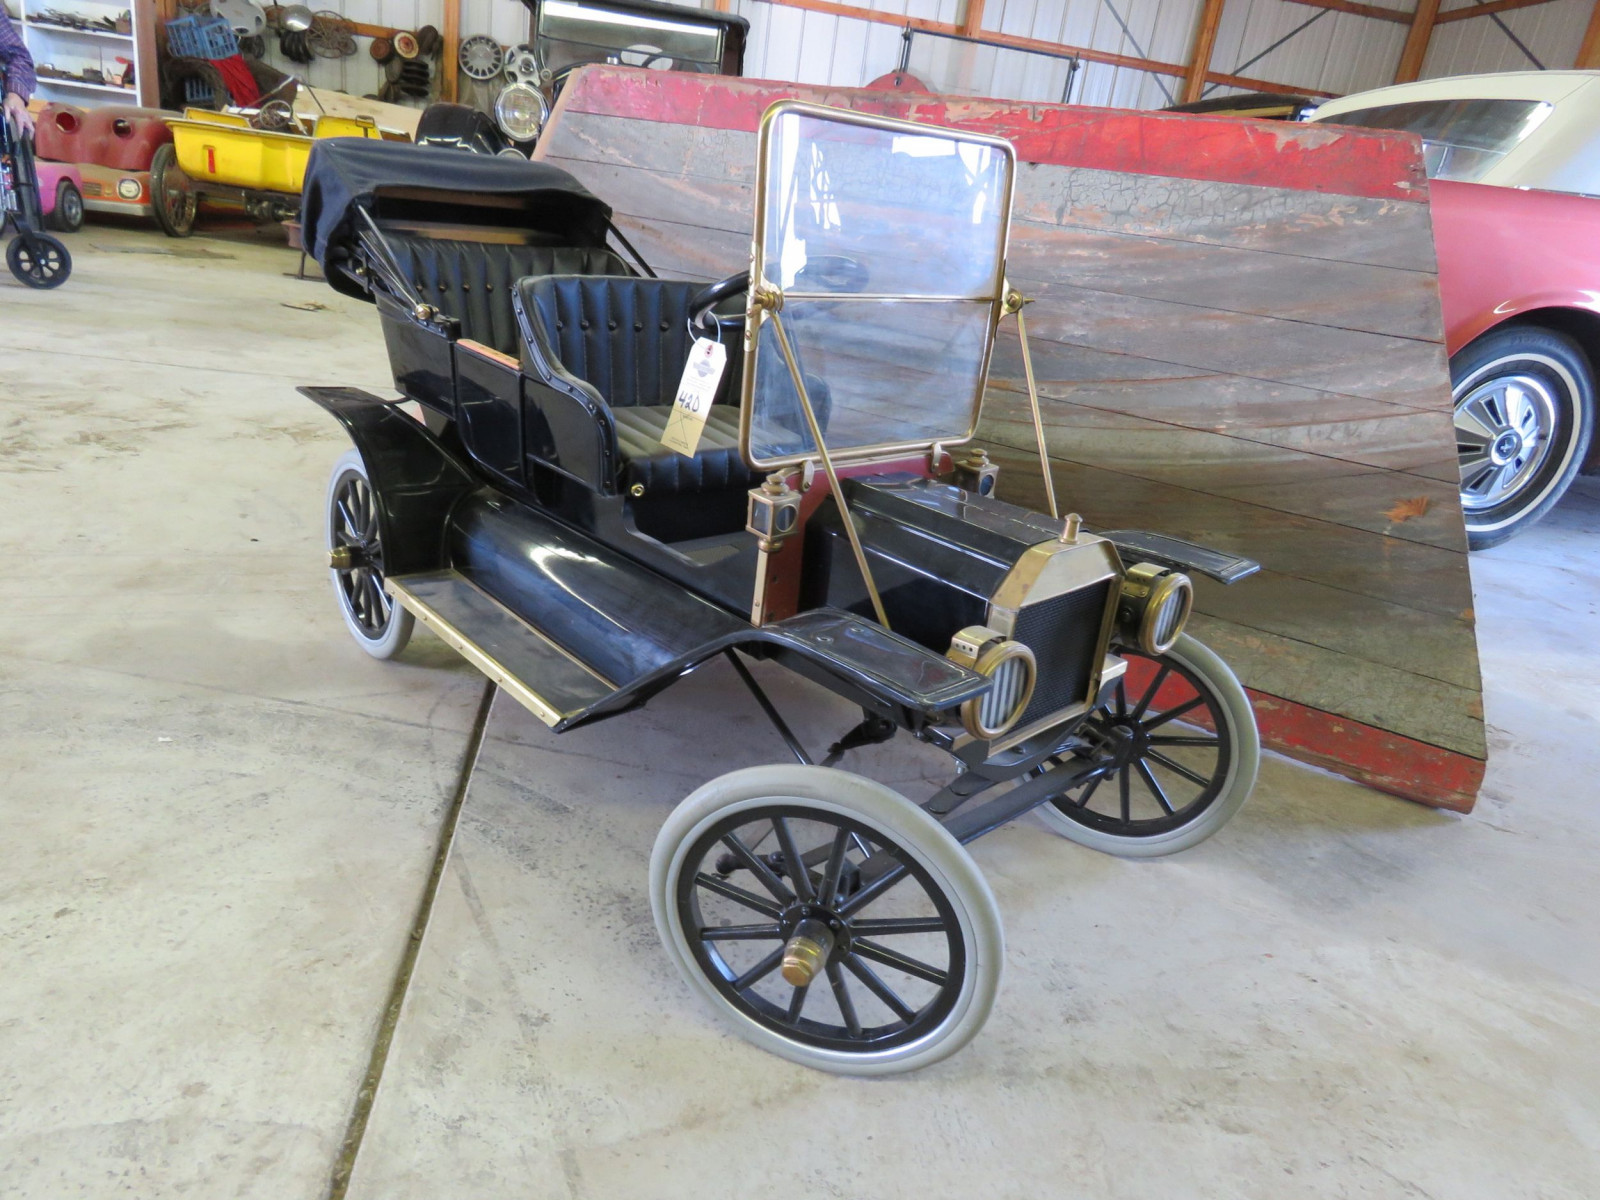 Model T Touring Car Pedal Car - Image 1